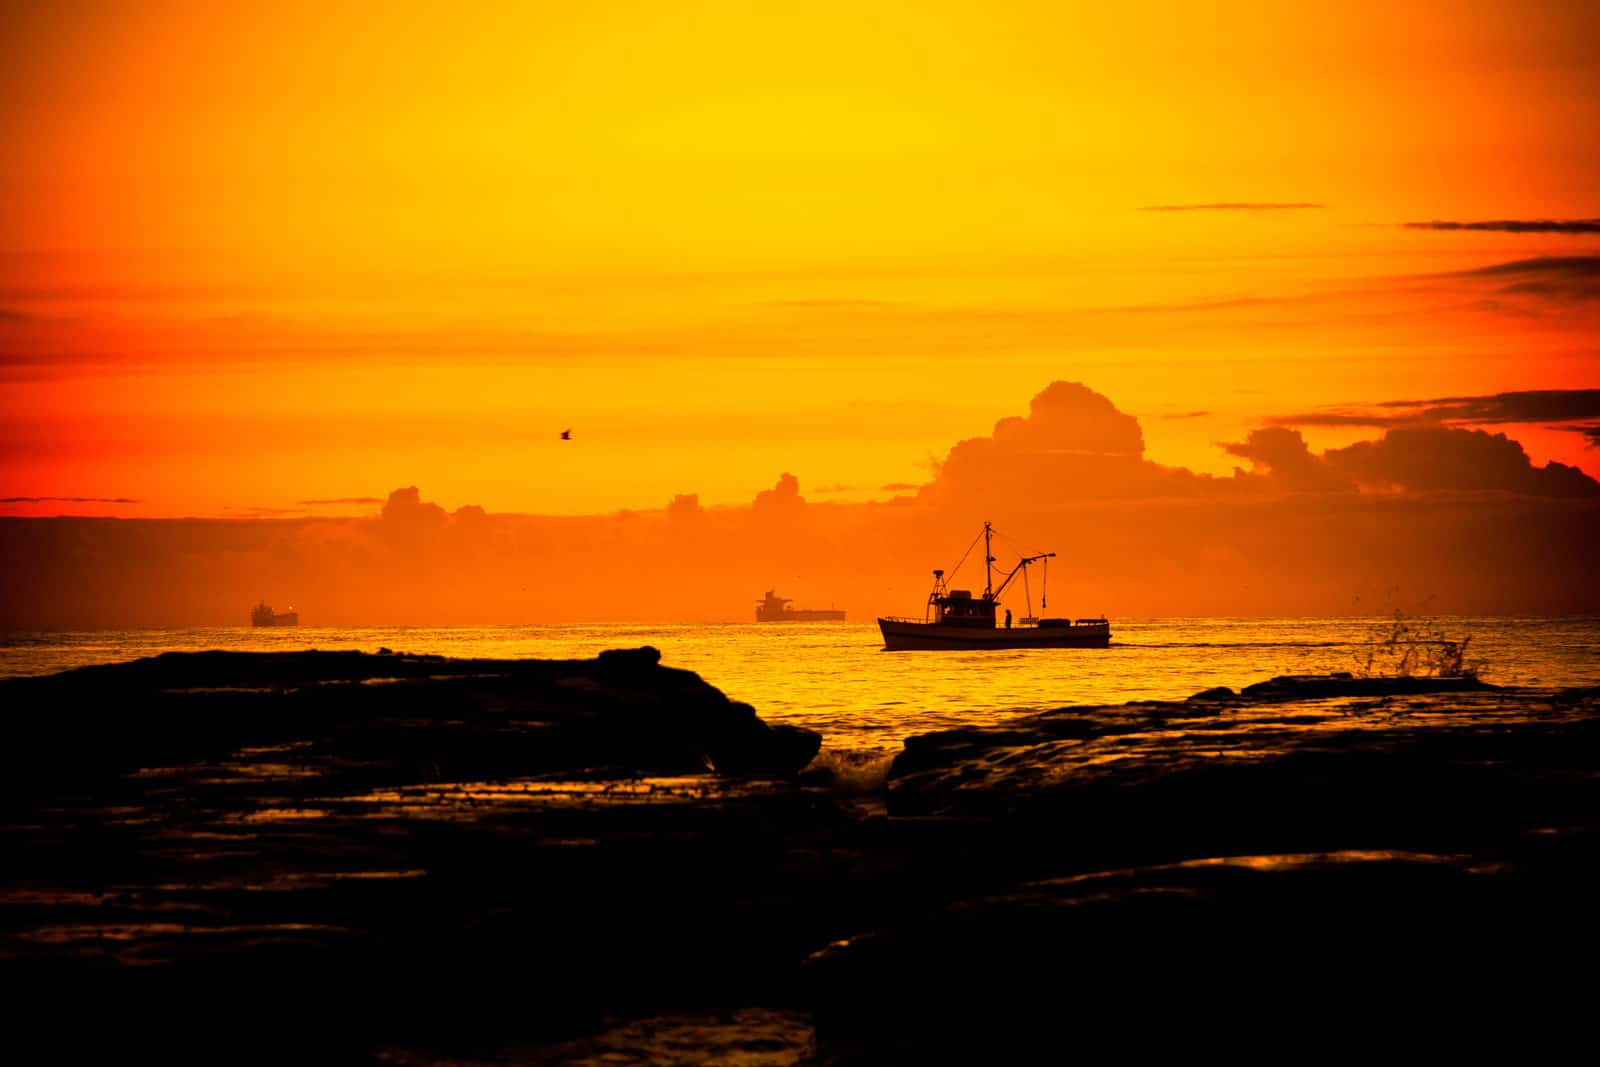 Fishing boat on the horizon at dawn in Wollongong, New South Wales, Australia. By Piccia Neri, all rights reserved